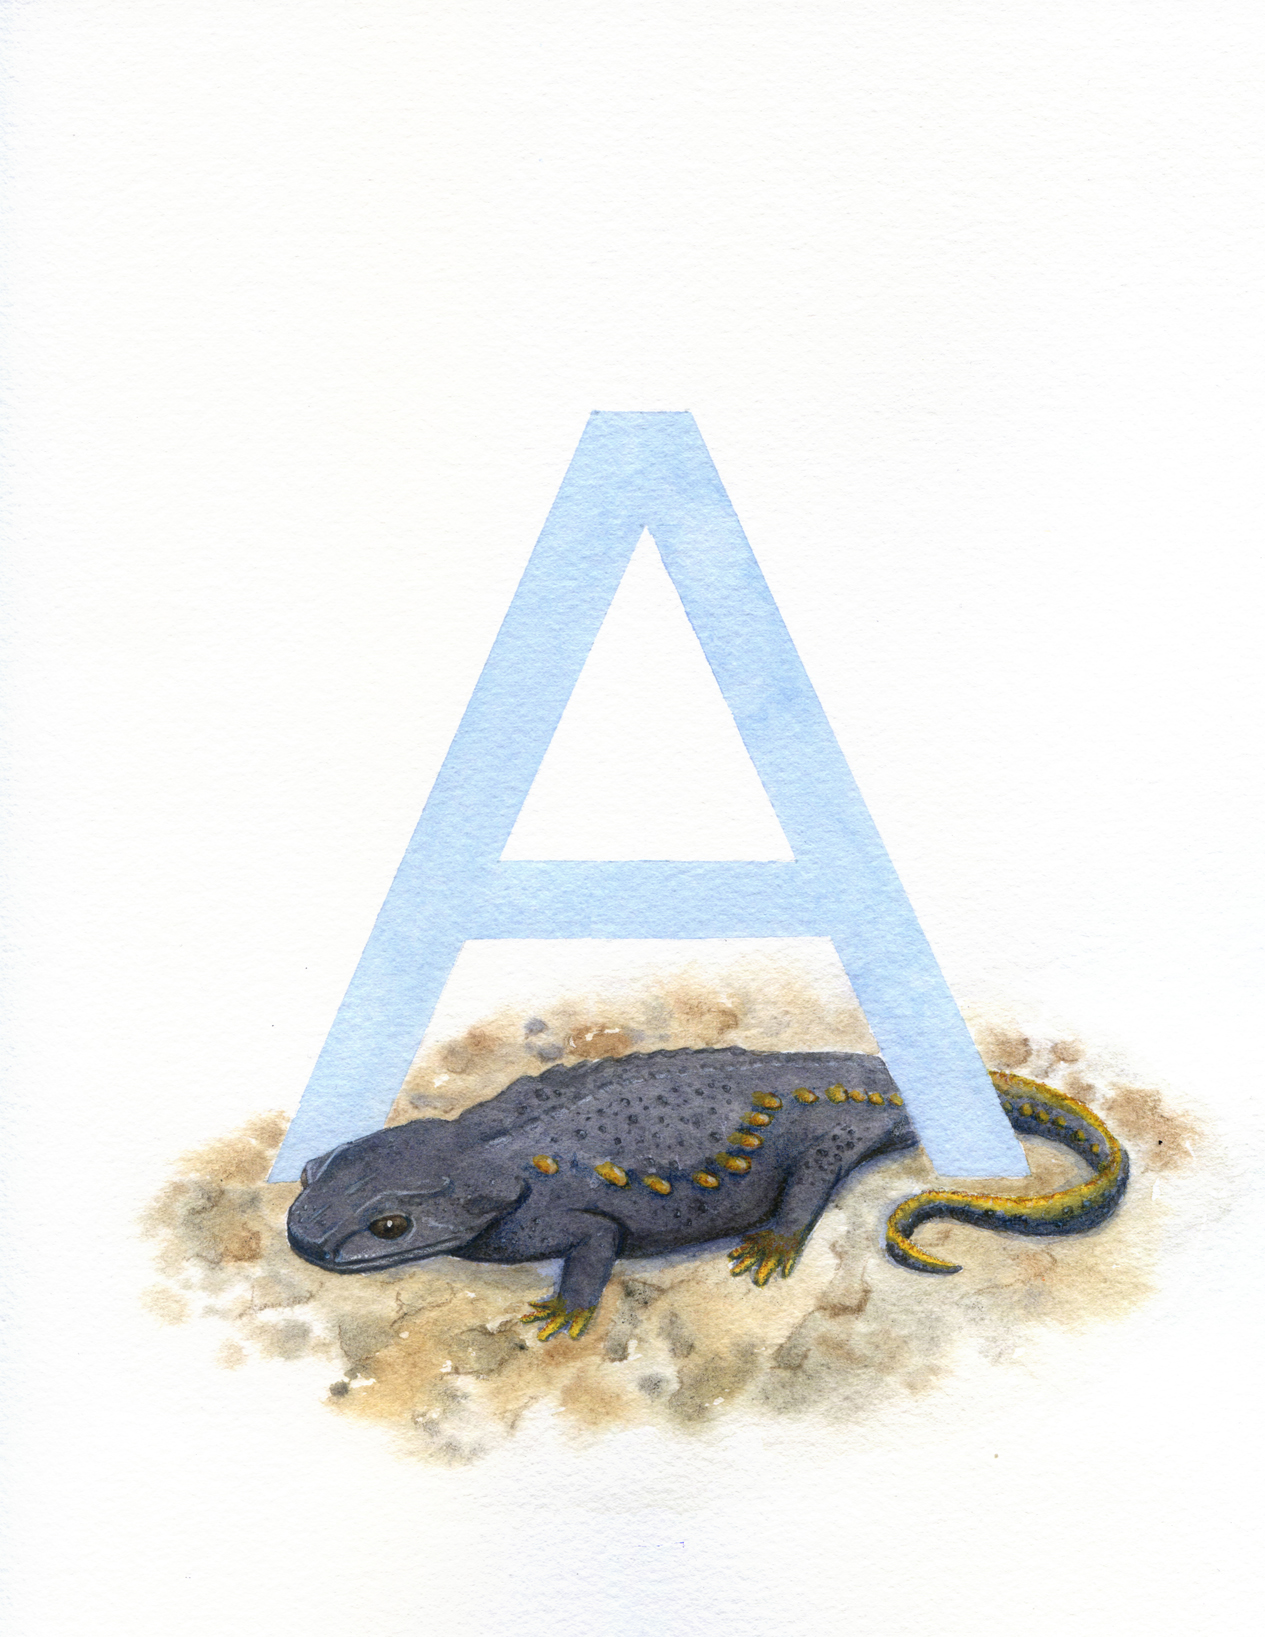 Anderson's Crocodile Newt salamander illustration